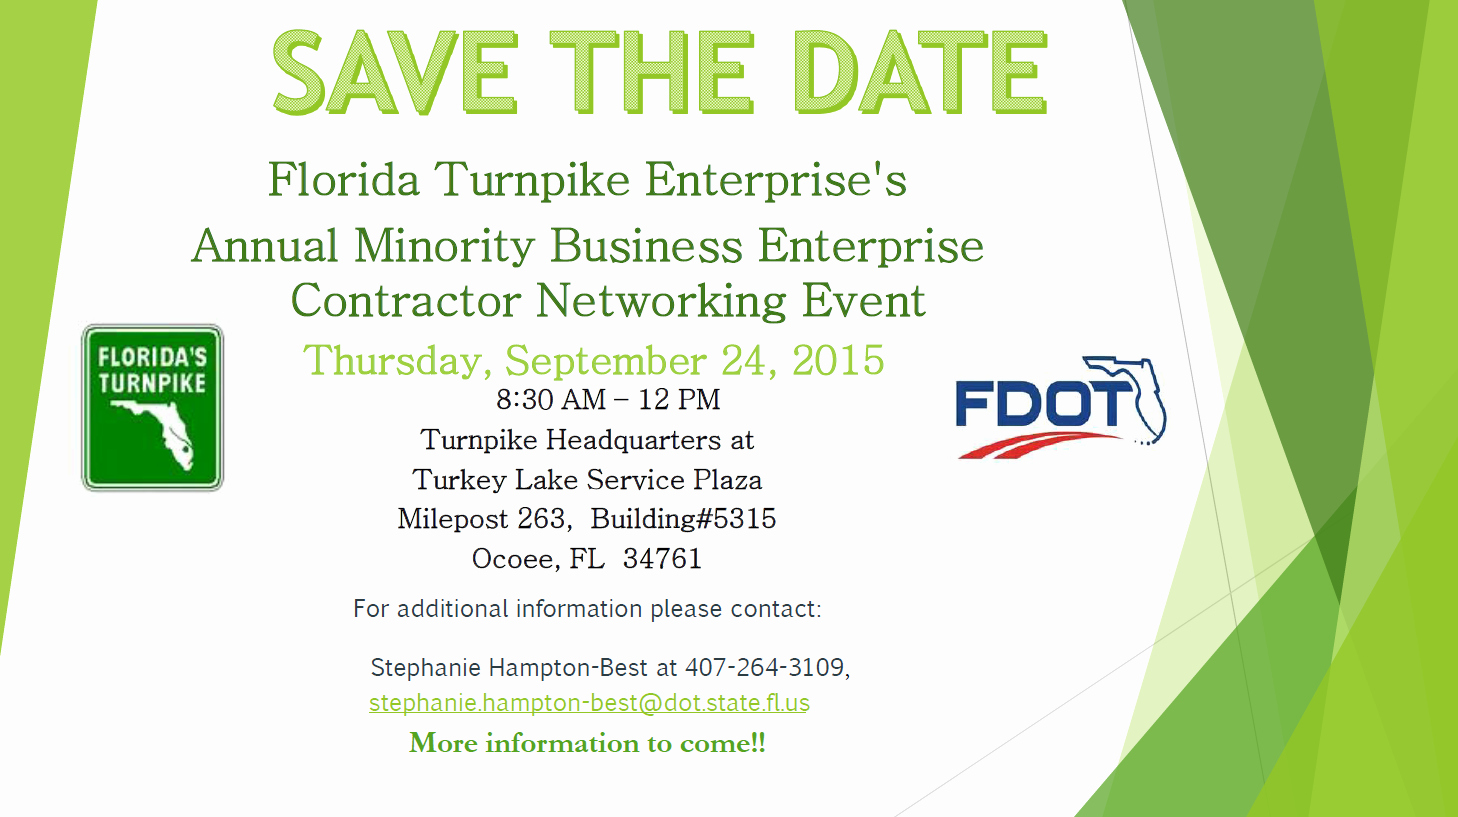 Save the Date Corporate event Fresh to Current Calendar